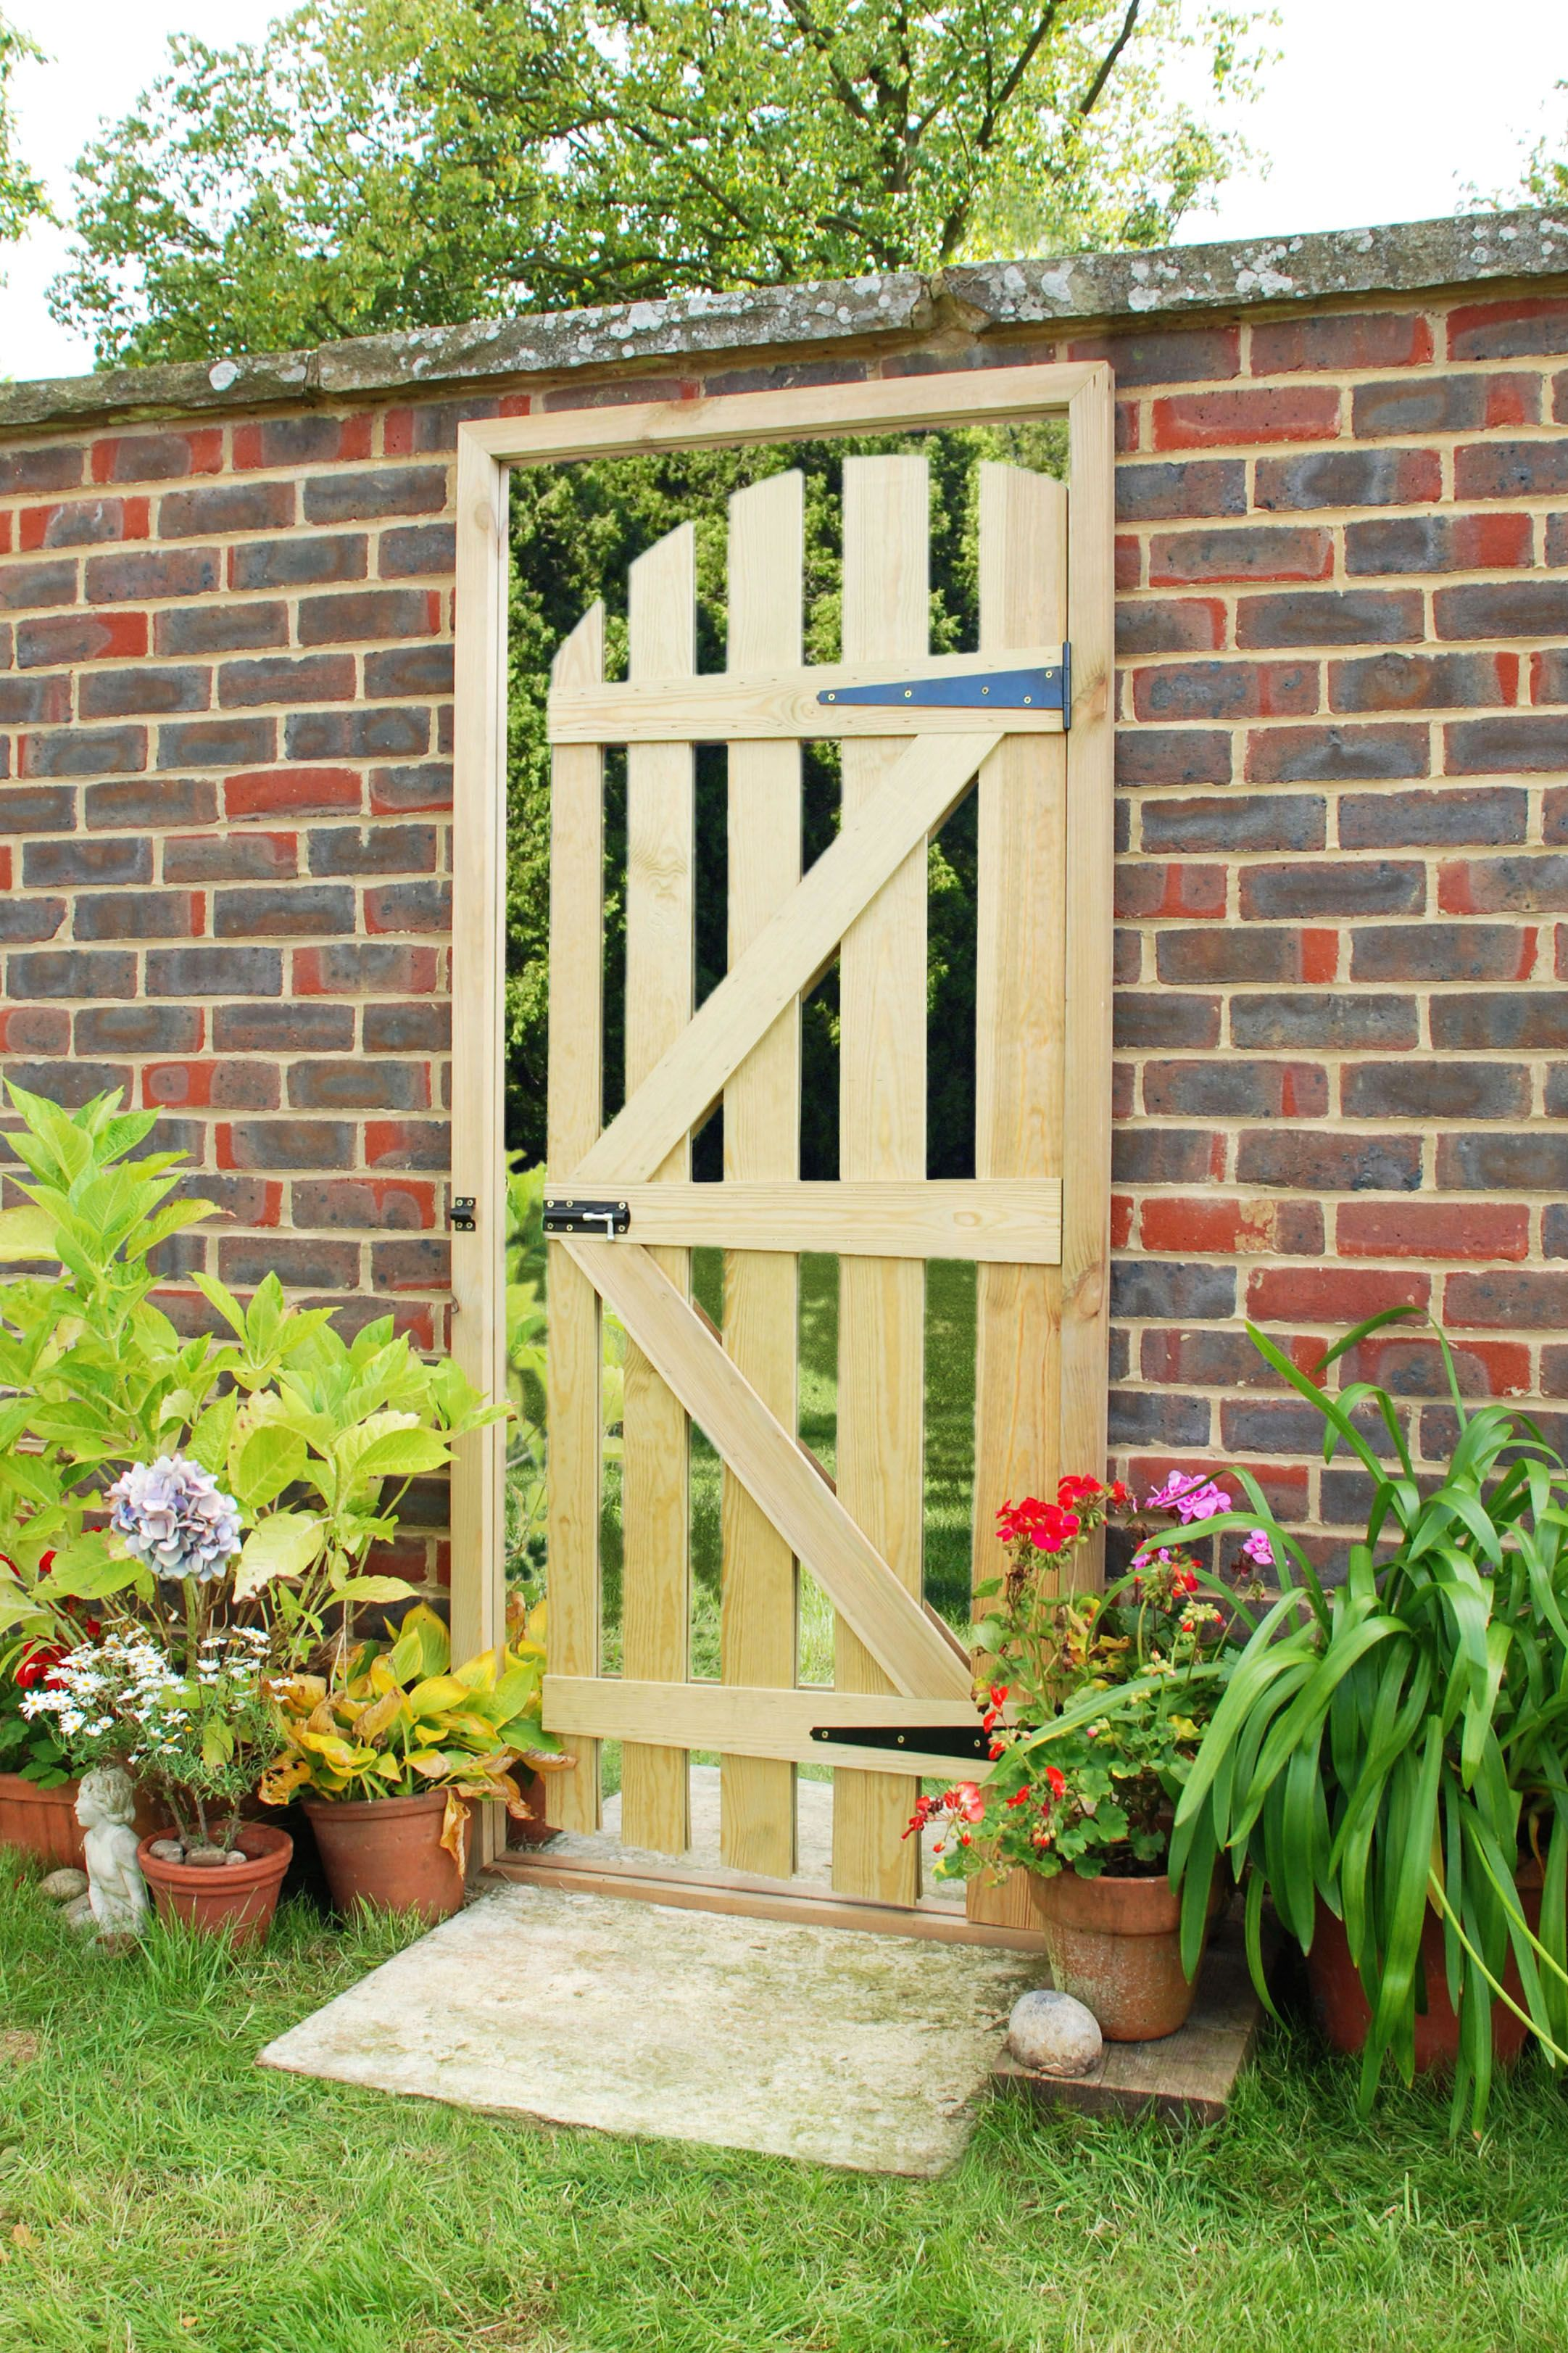 6ft 2in x 2ft 8in Illusion Garden Mirror Gate | DIY garden art ...